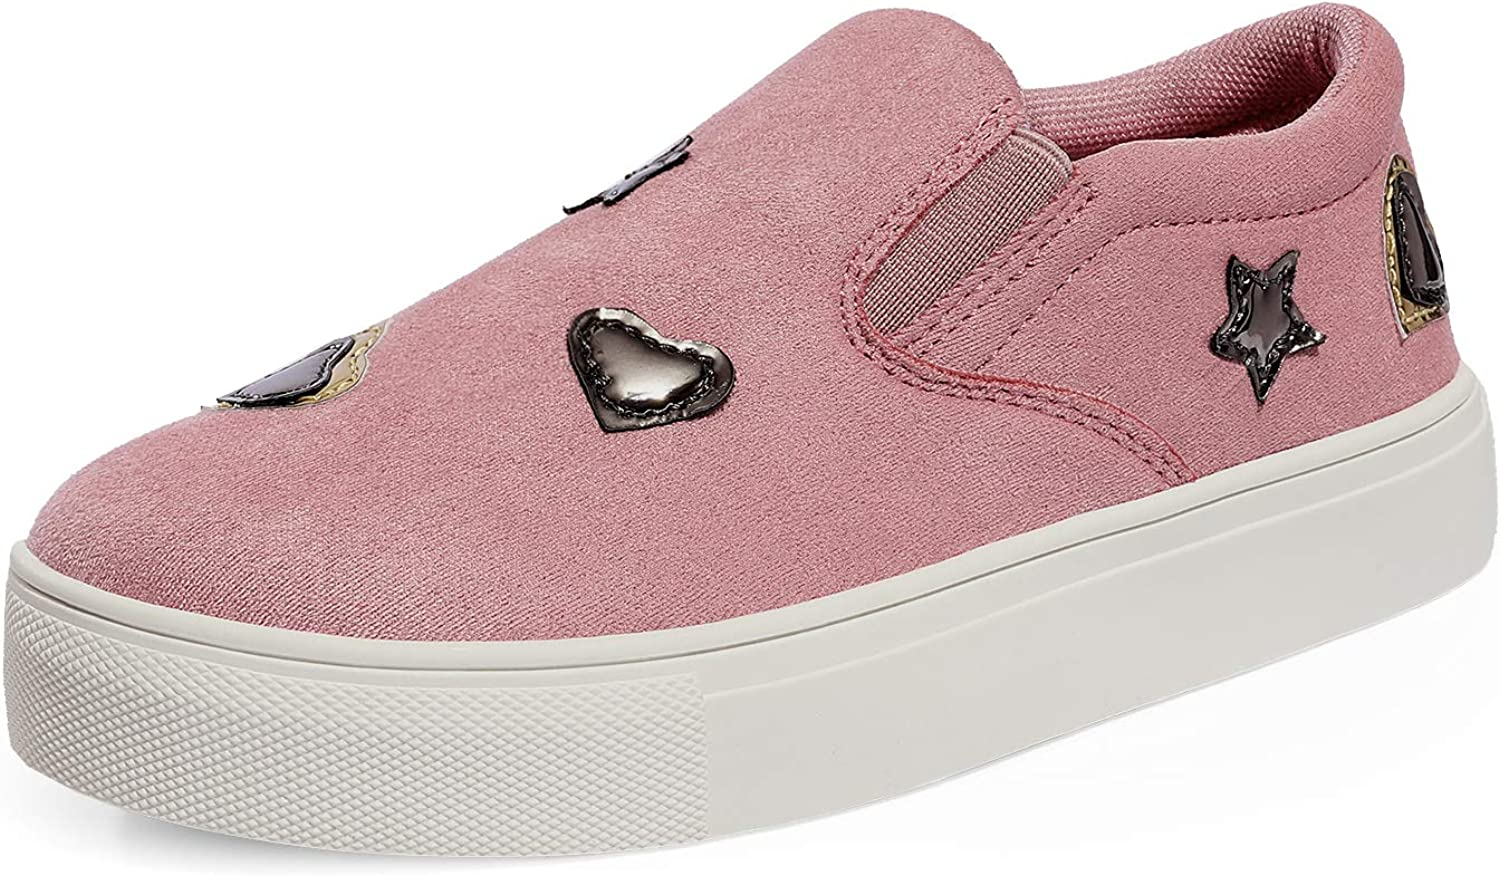 New 1 year warranty arrival DREAM PAIRS Girls Casual Sneakers Shoes Slip-on Loafer